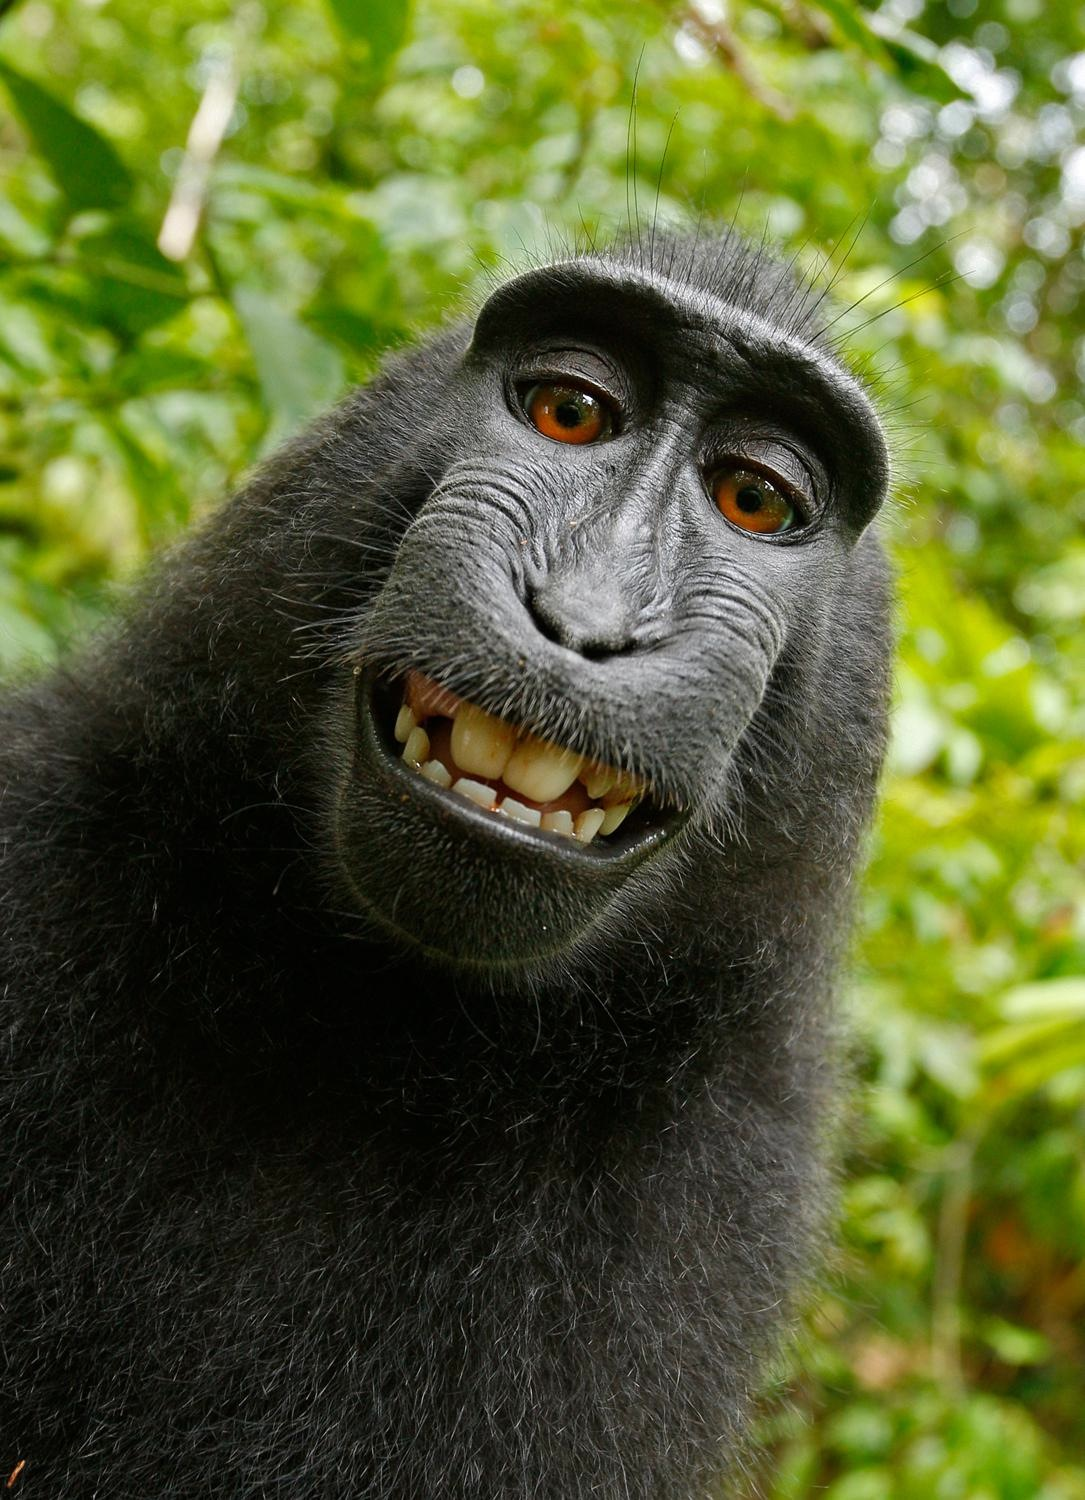 Naruto, the Celebes crested macaque, took her own selfie with David Slater's camera in 2011. The photo's copyright has been debated ever since.